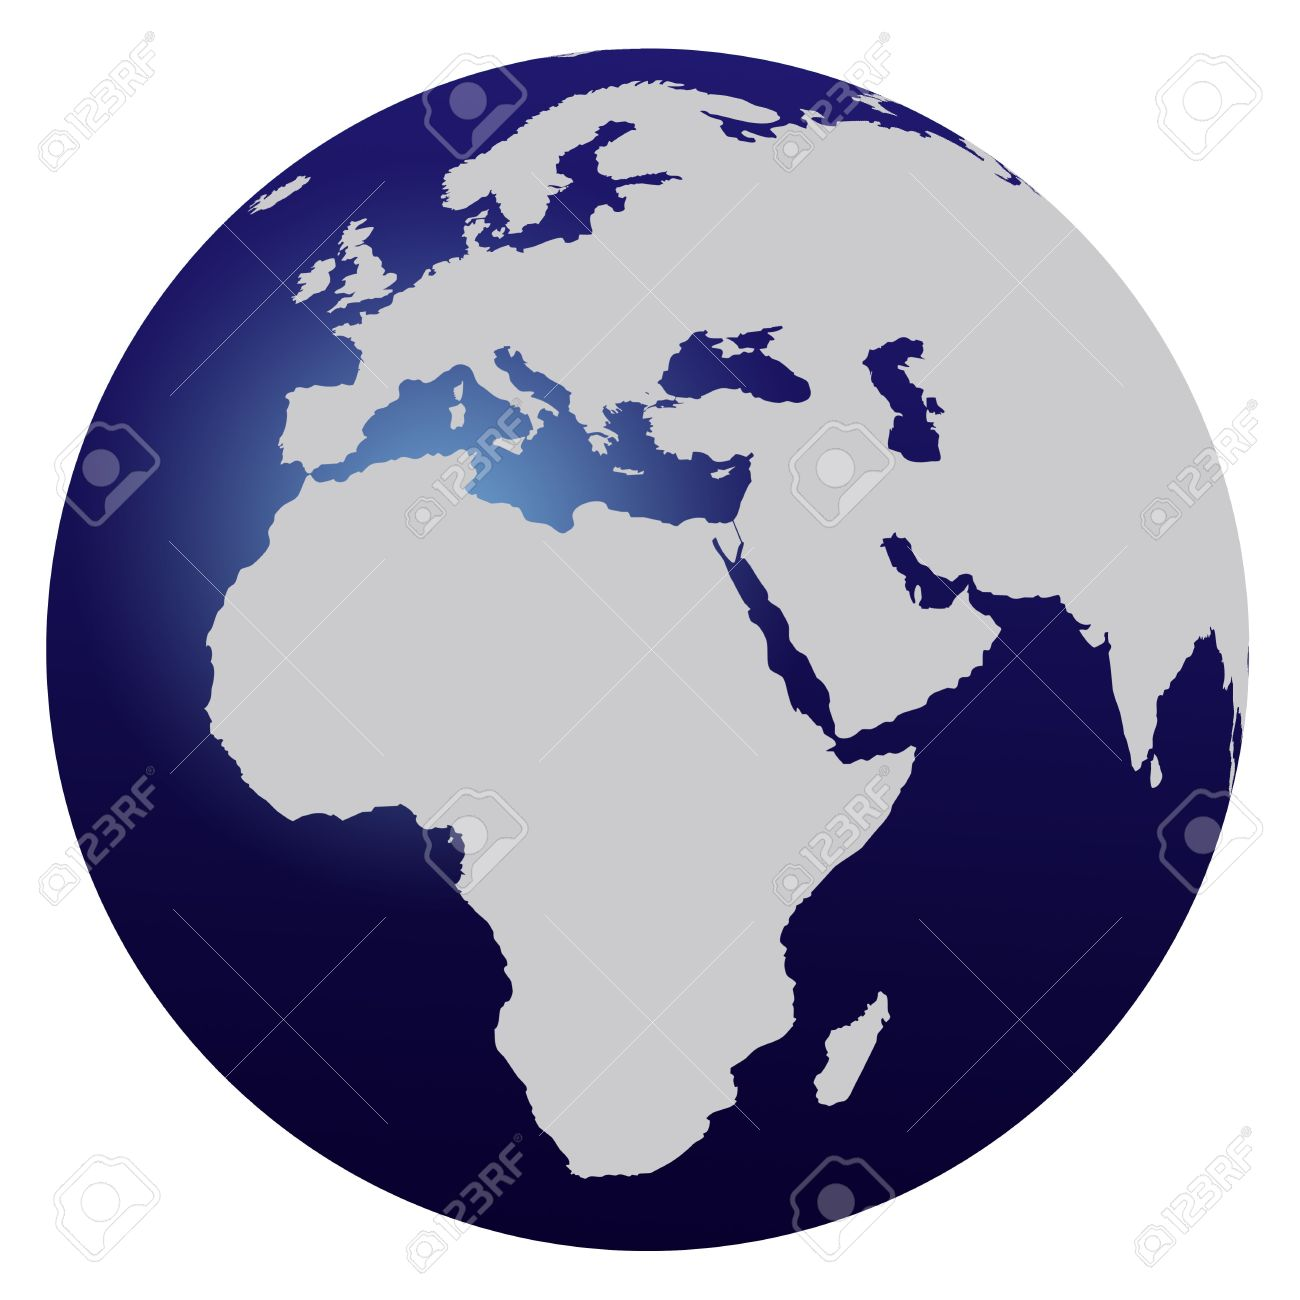 World map blue globe europe and africa stock photo picture and stock photo world map blue globe europe and africa gumiabroncs Choice Image